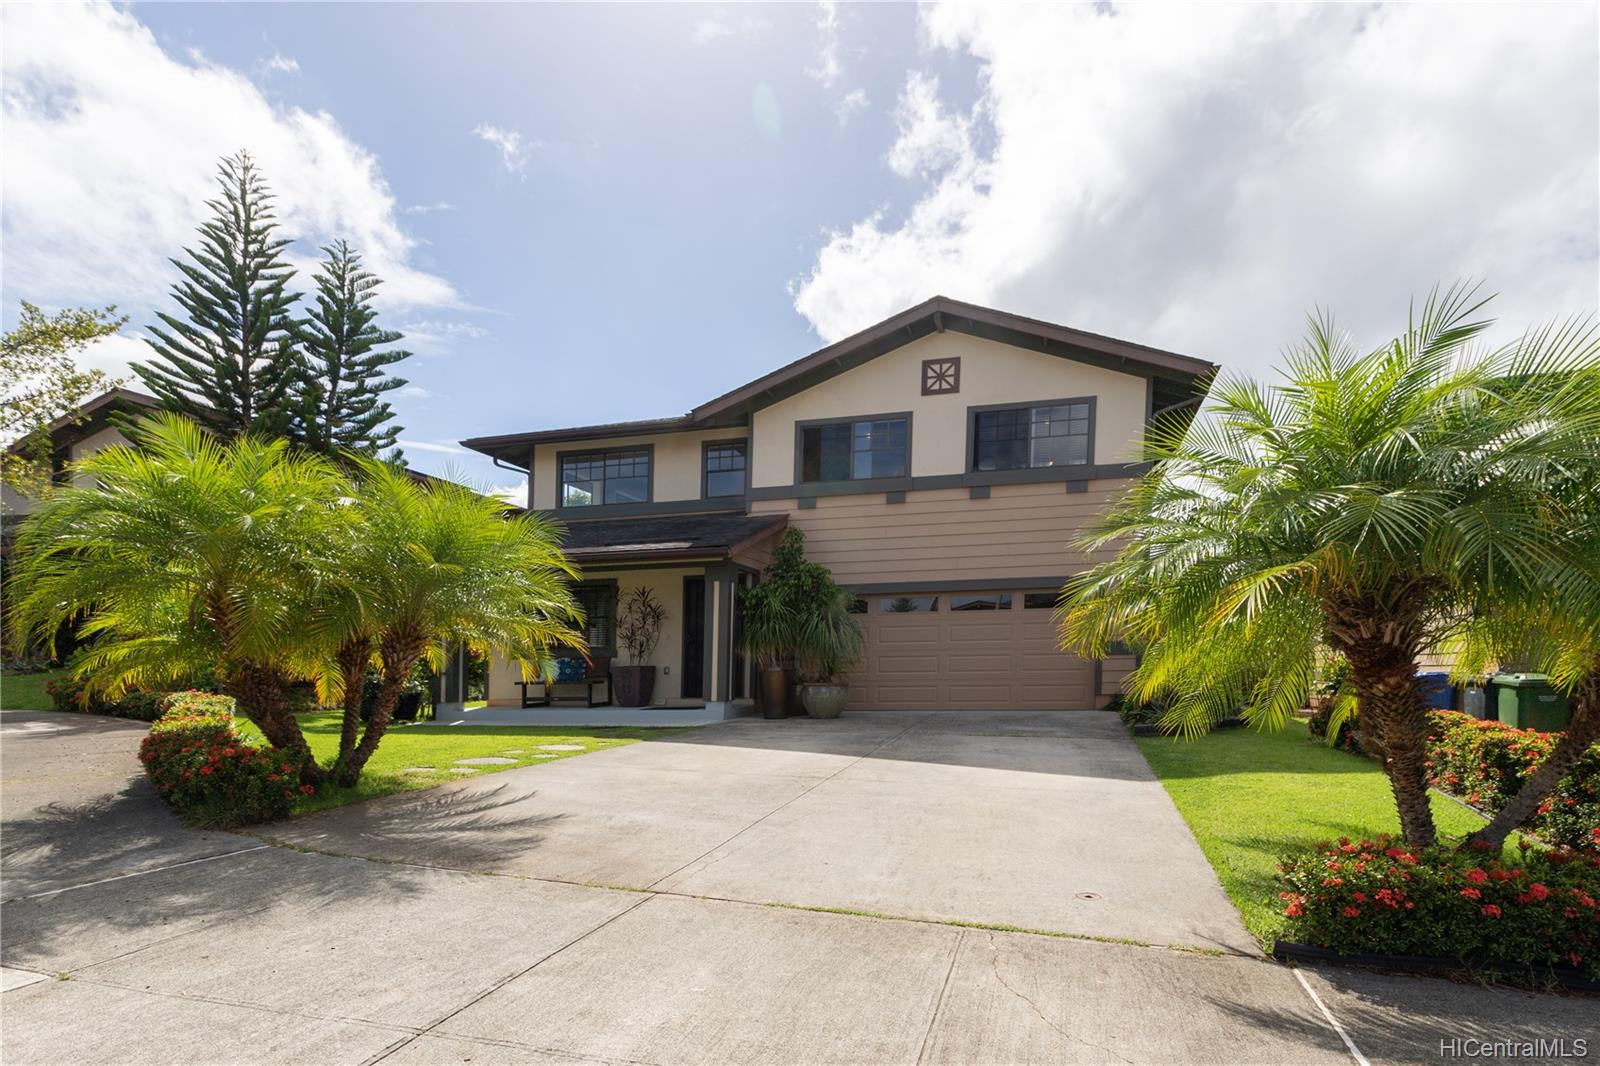 Mililani Mauka Homes For Sale